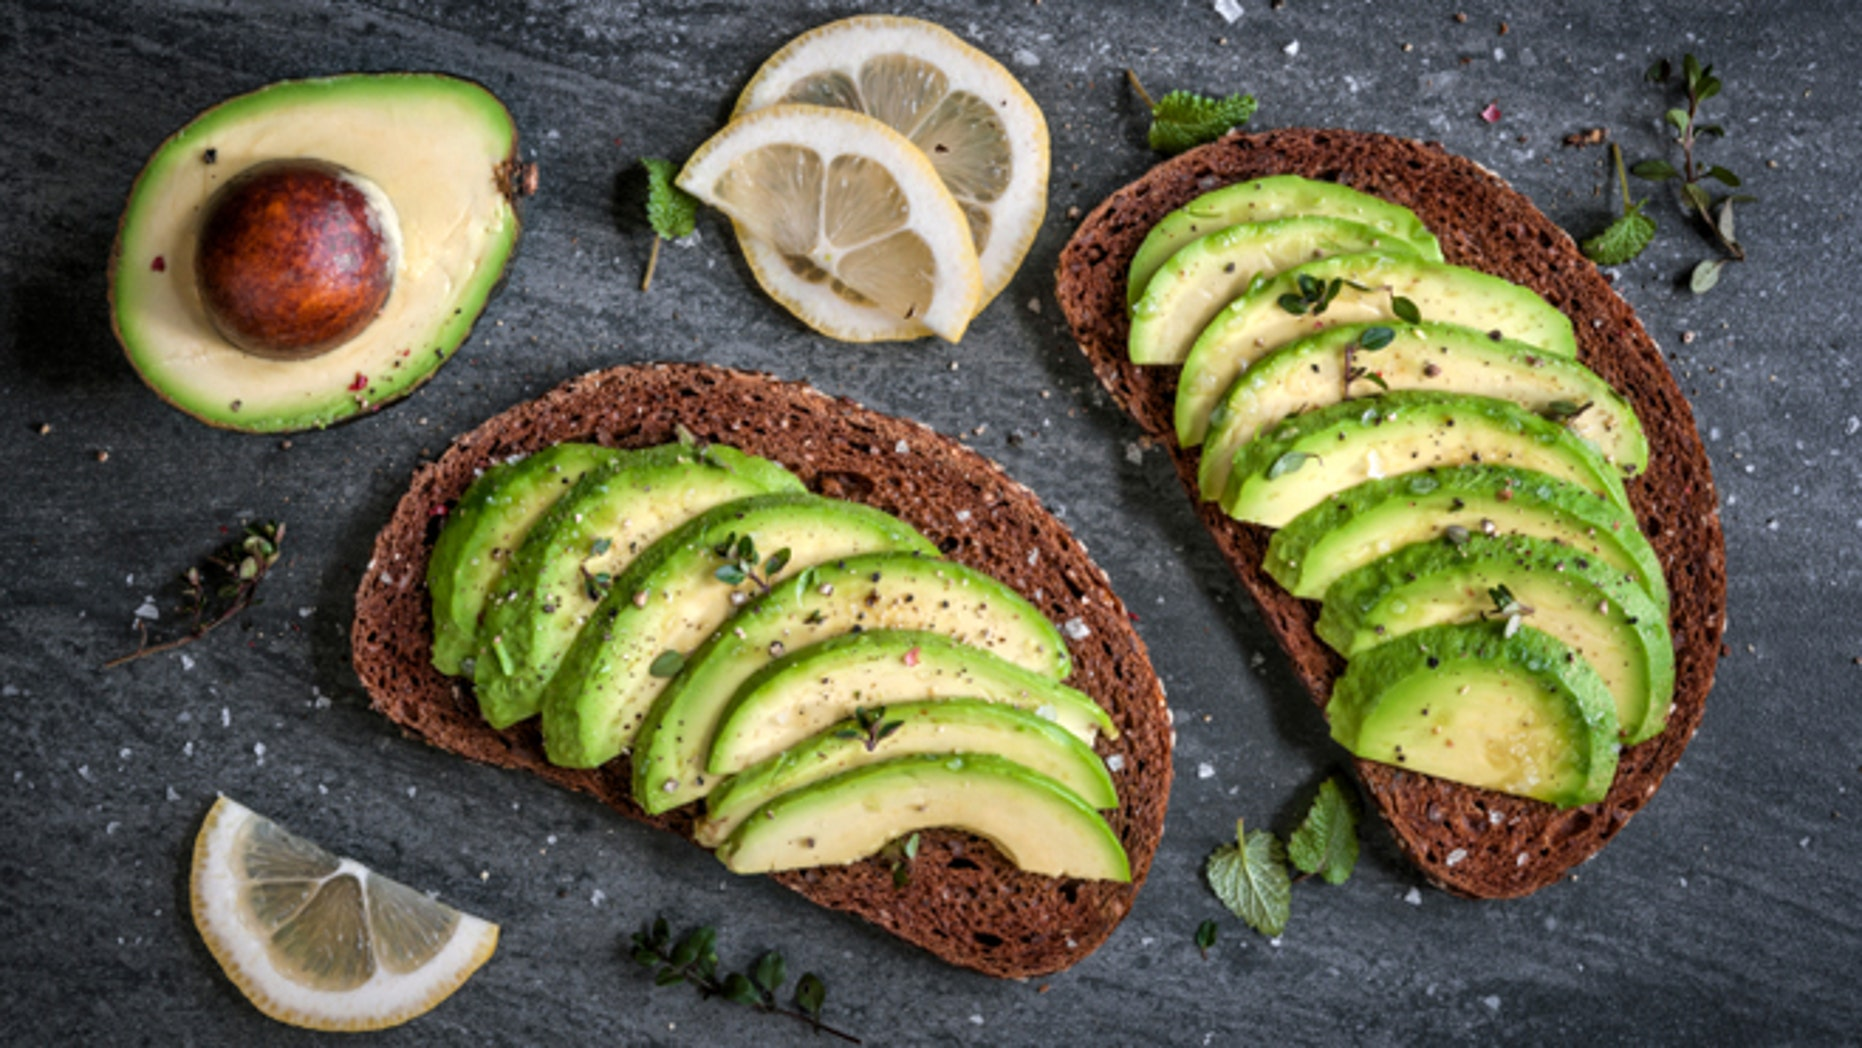 Avocado toast is healthy alternative to a breakfast sandwich loaded down with egg, meat and cheese.